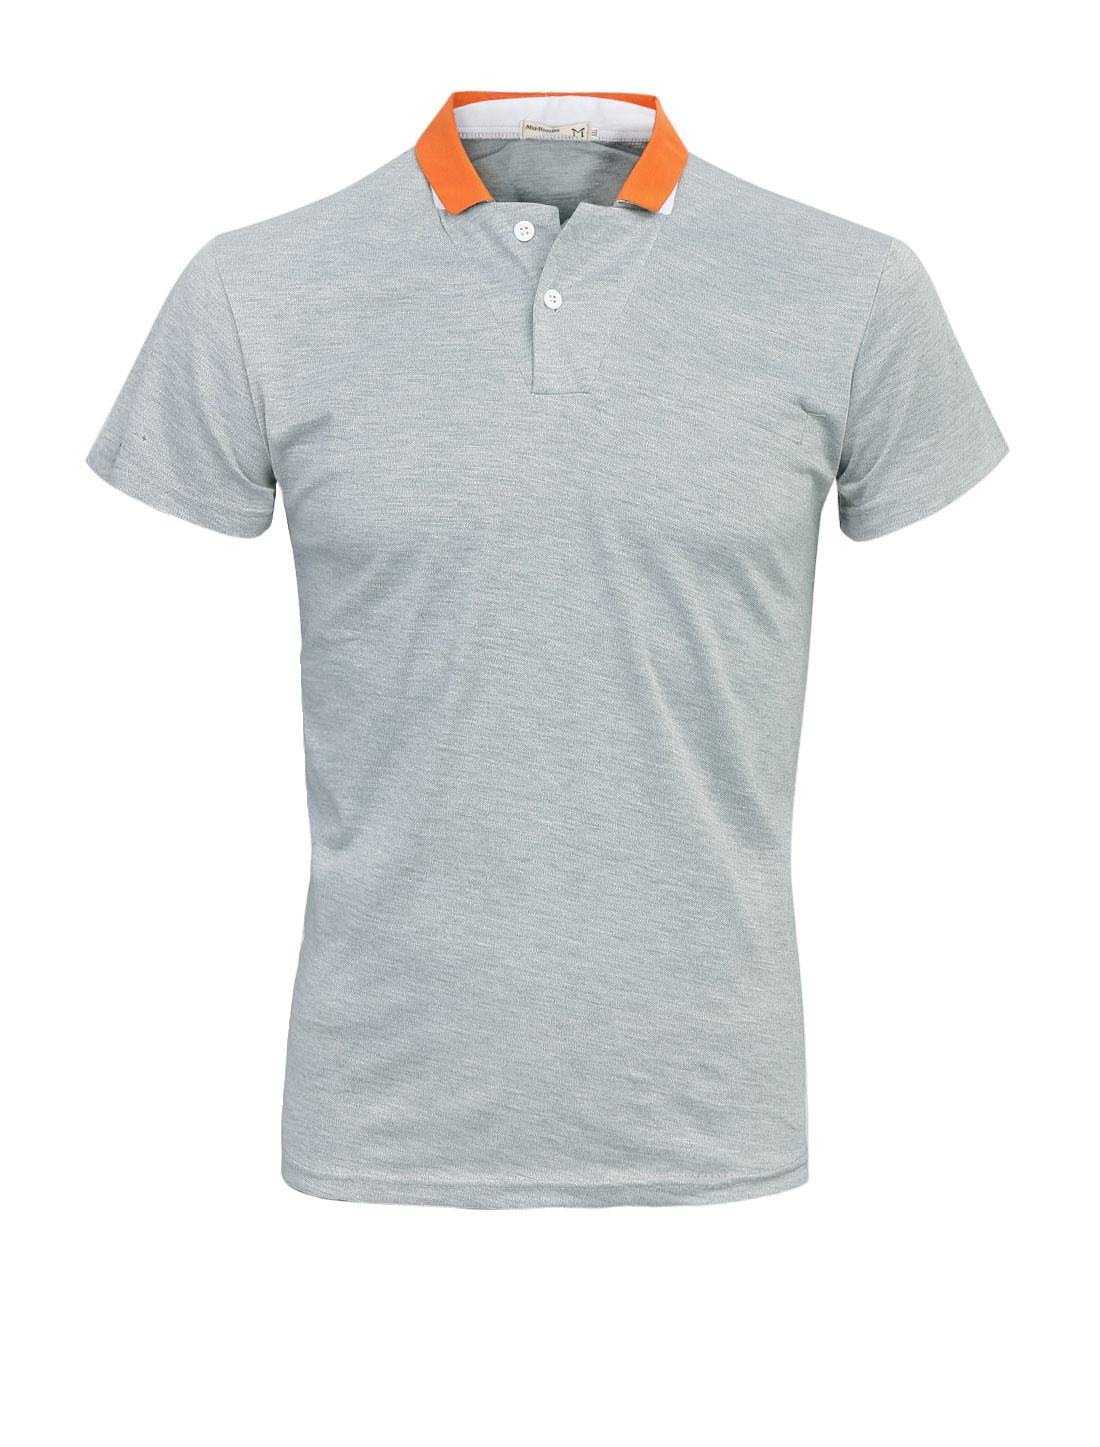 Men Two Buttons Closed Slipover Short Sleeve Polo Shirt Light Gray M